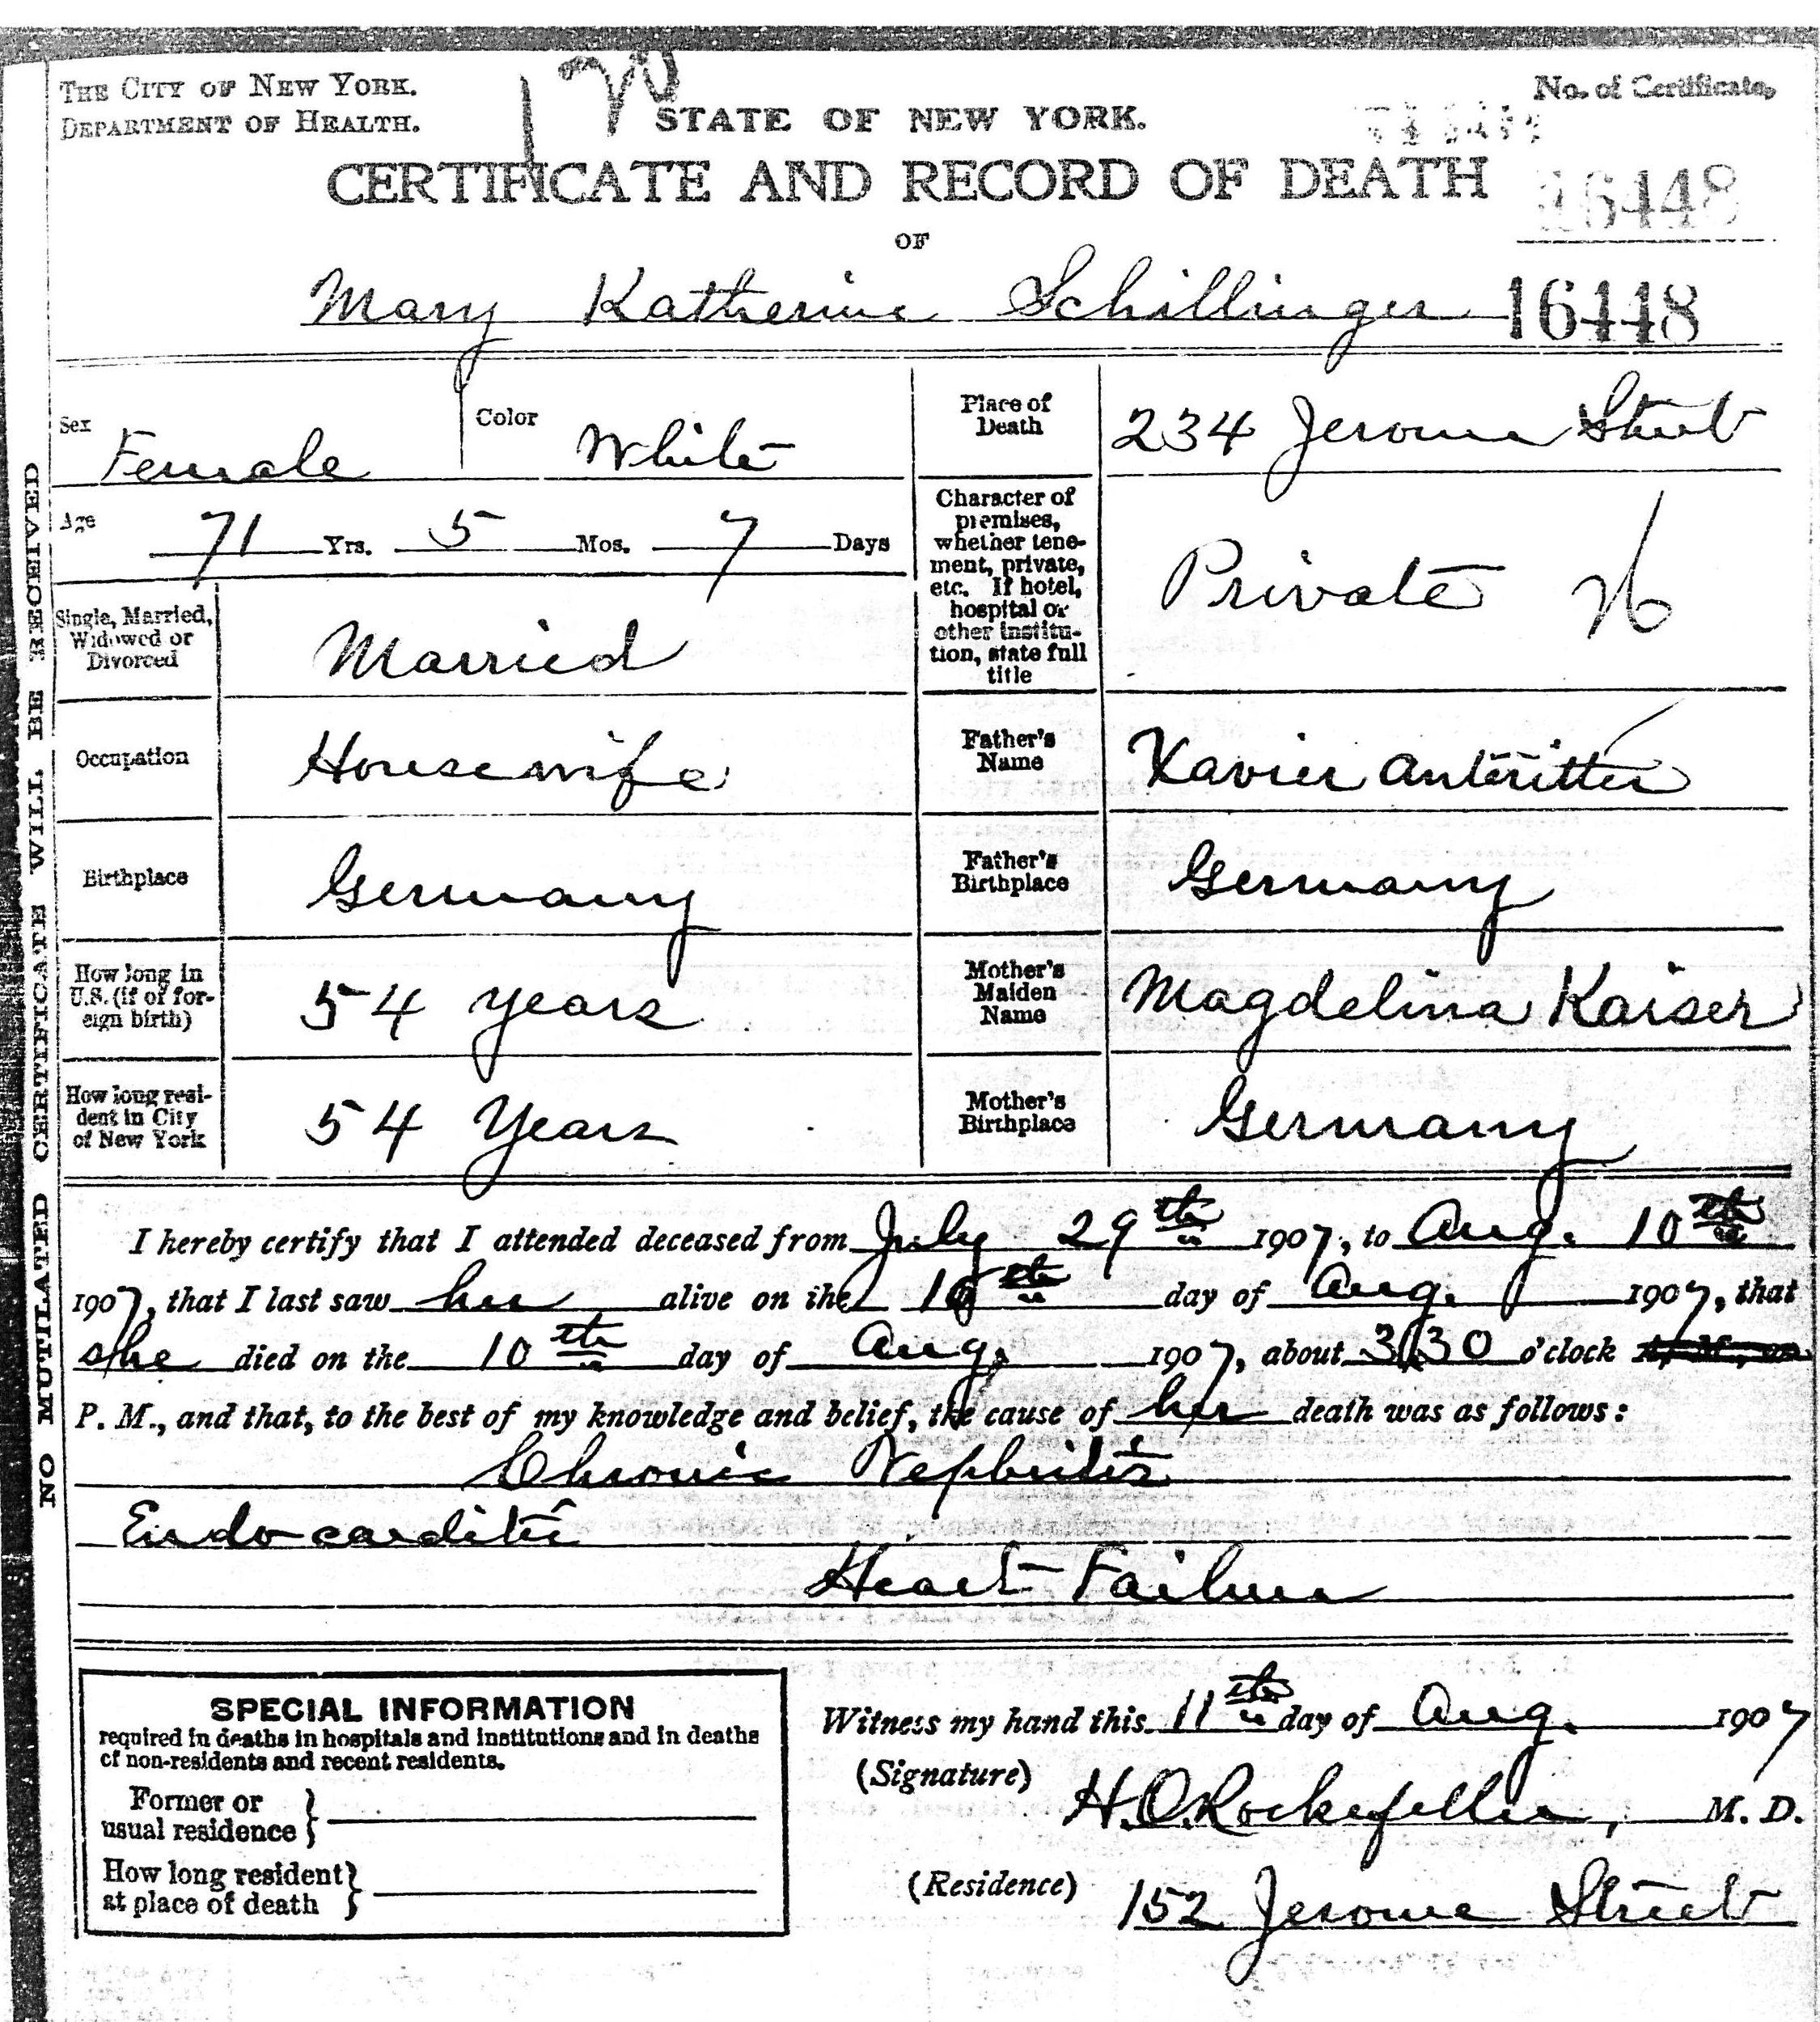 April 2014 roots of kinship mary katherine schillinger death certificate 1betcityfo Images